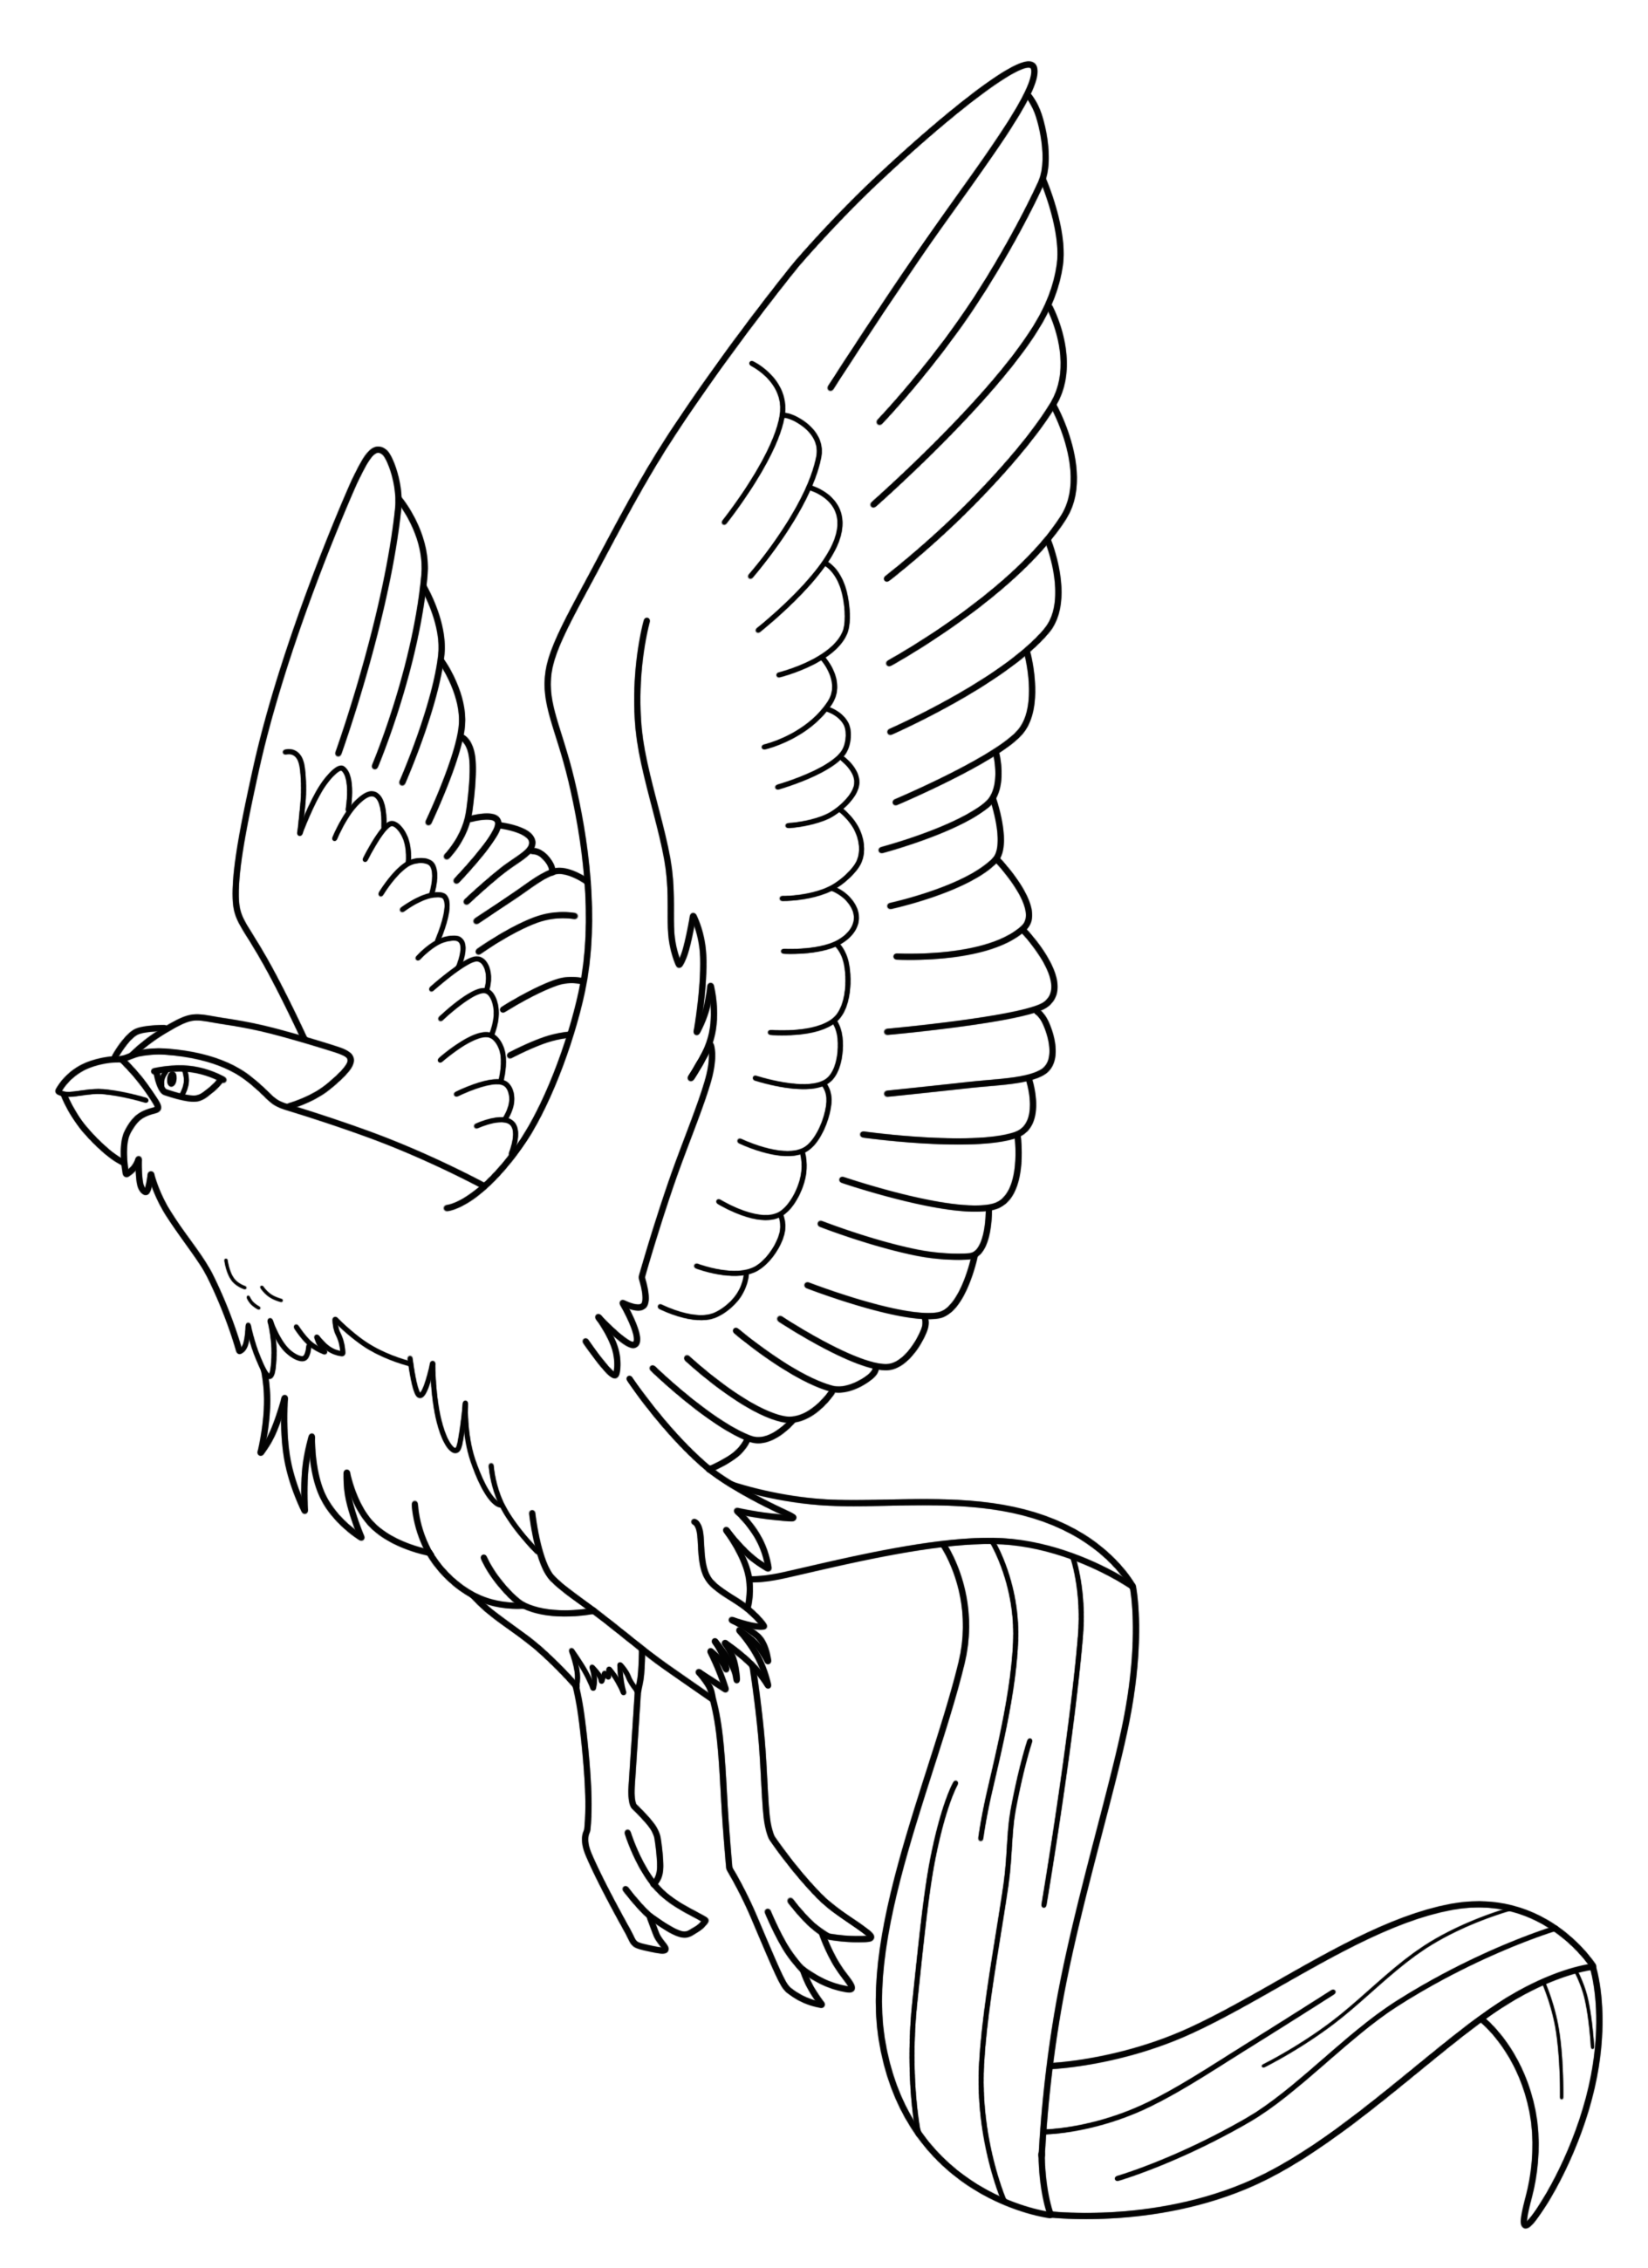 Articuno Coloring Pages Google Search Coloring Pages Articuno Coloring Pages